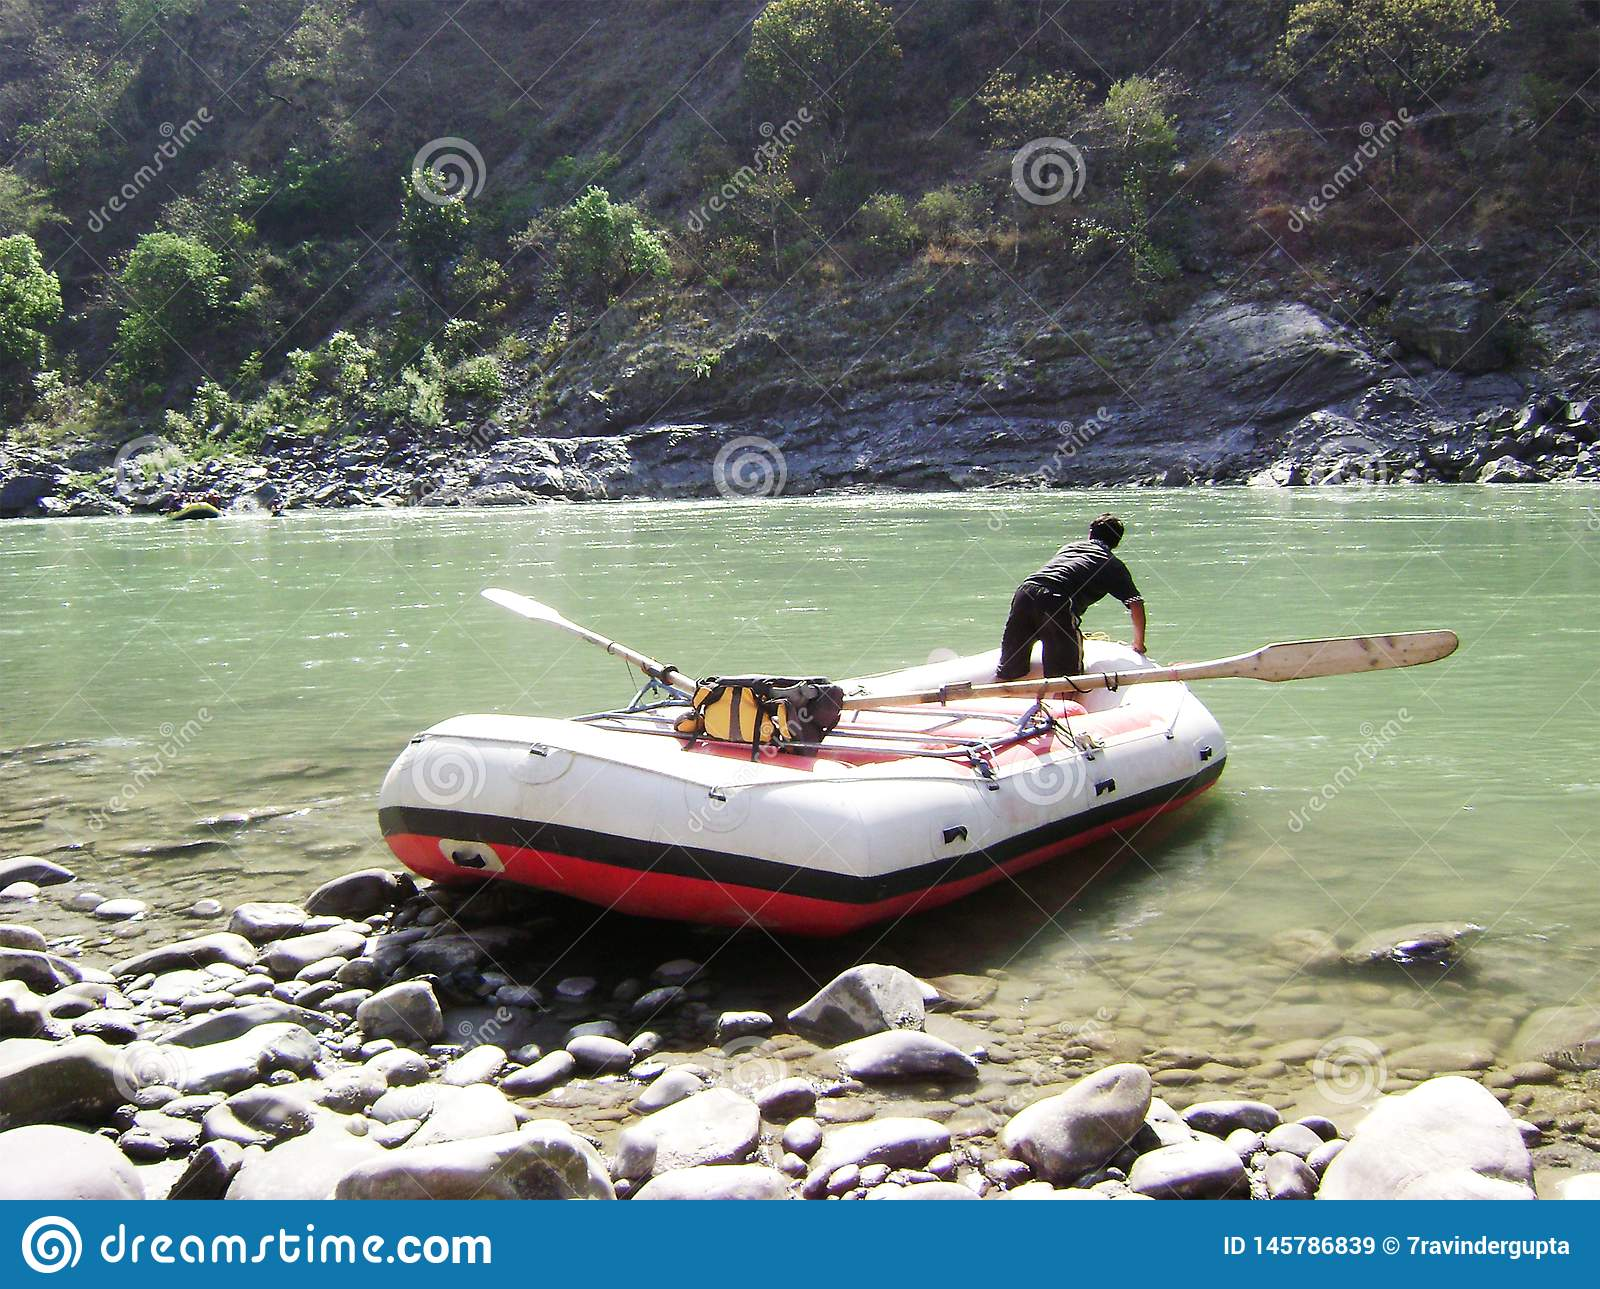 Flowing River, Boat with Man and Mountain